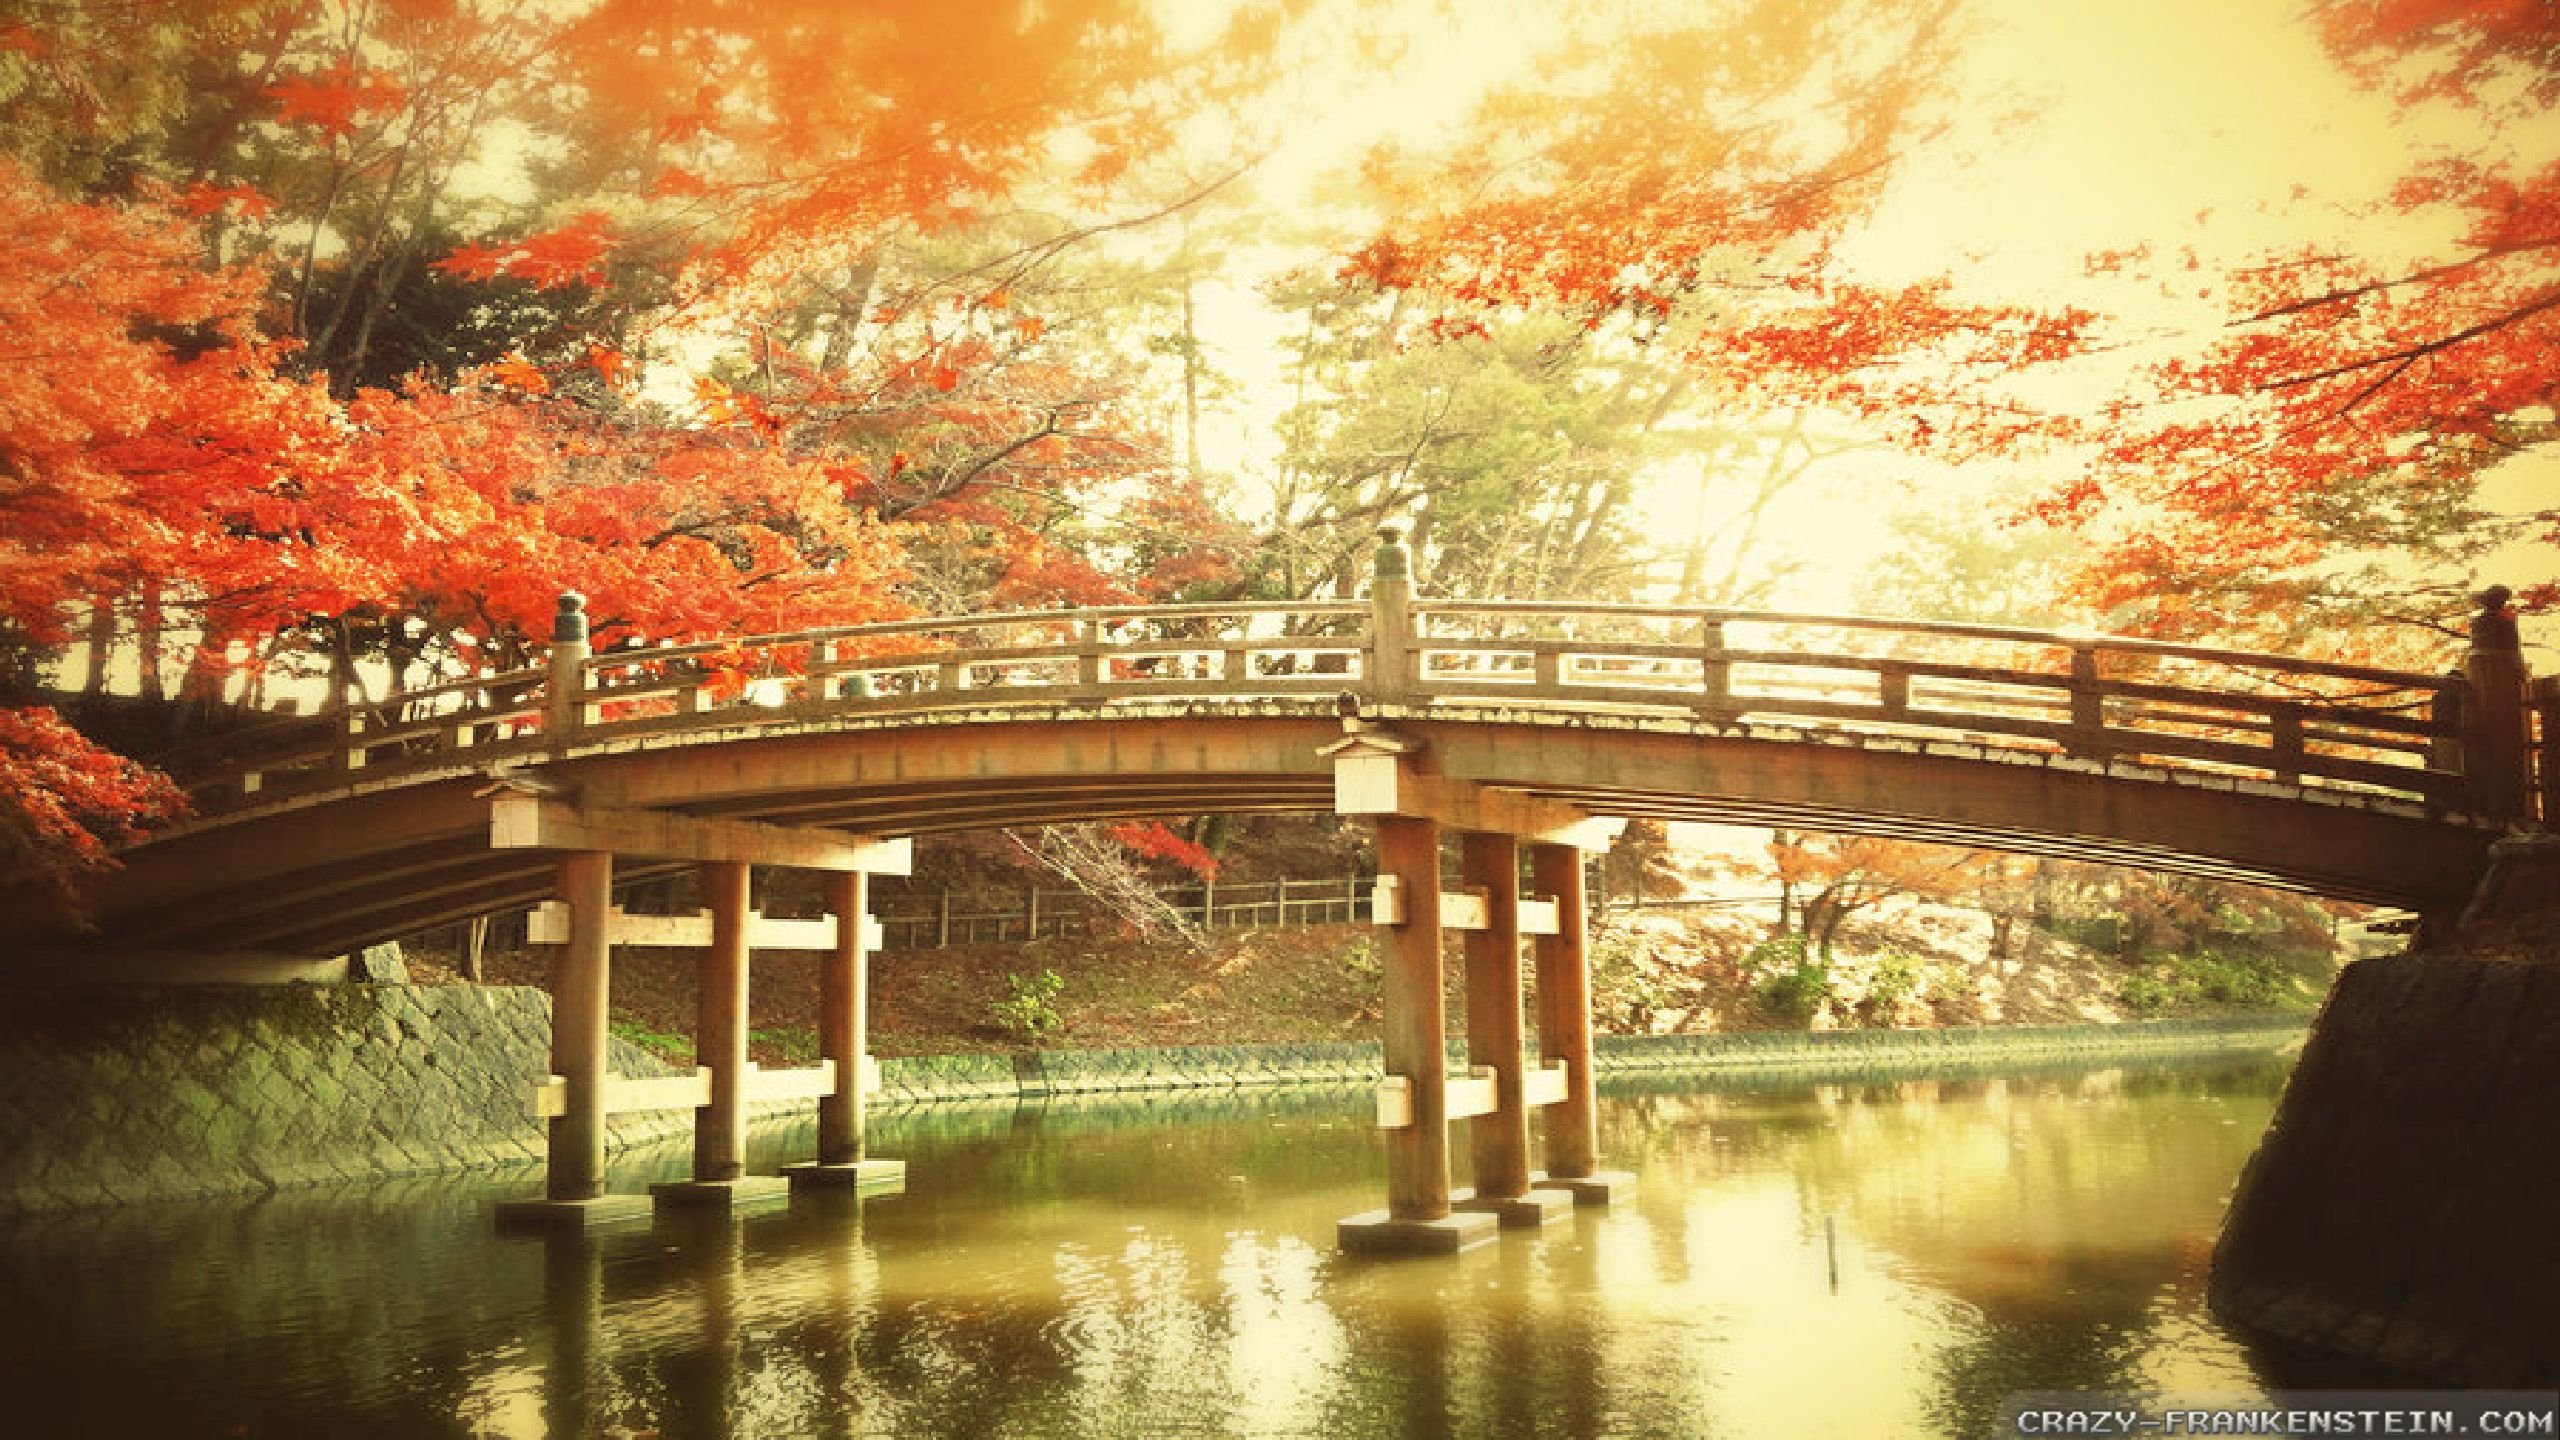 Autumn In Japan wallpapers - Seasonal - Crazy Frankenstein